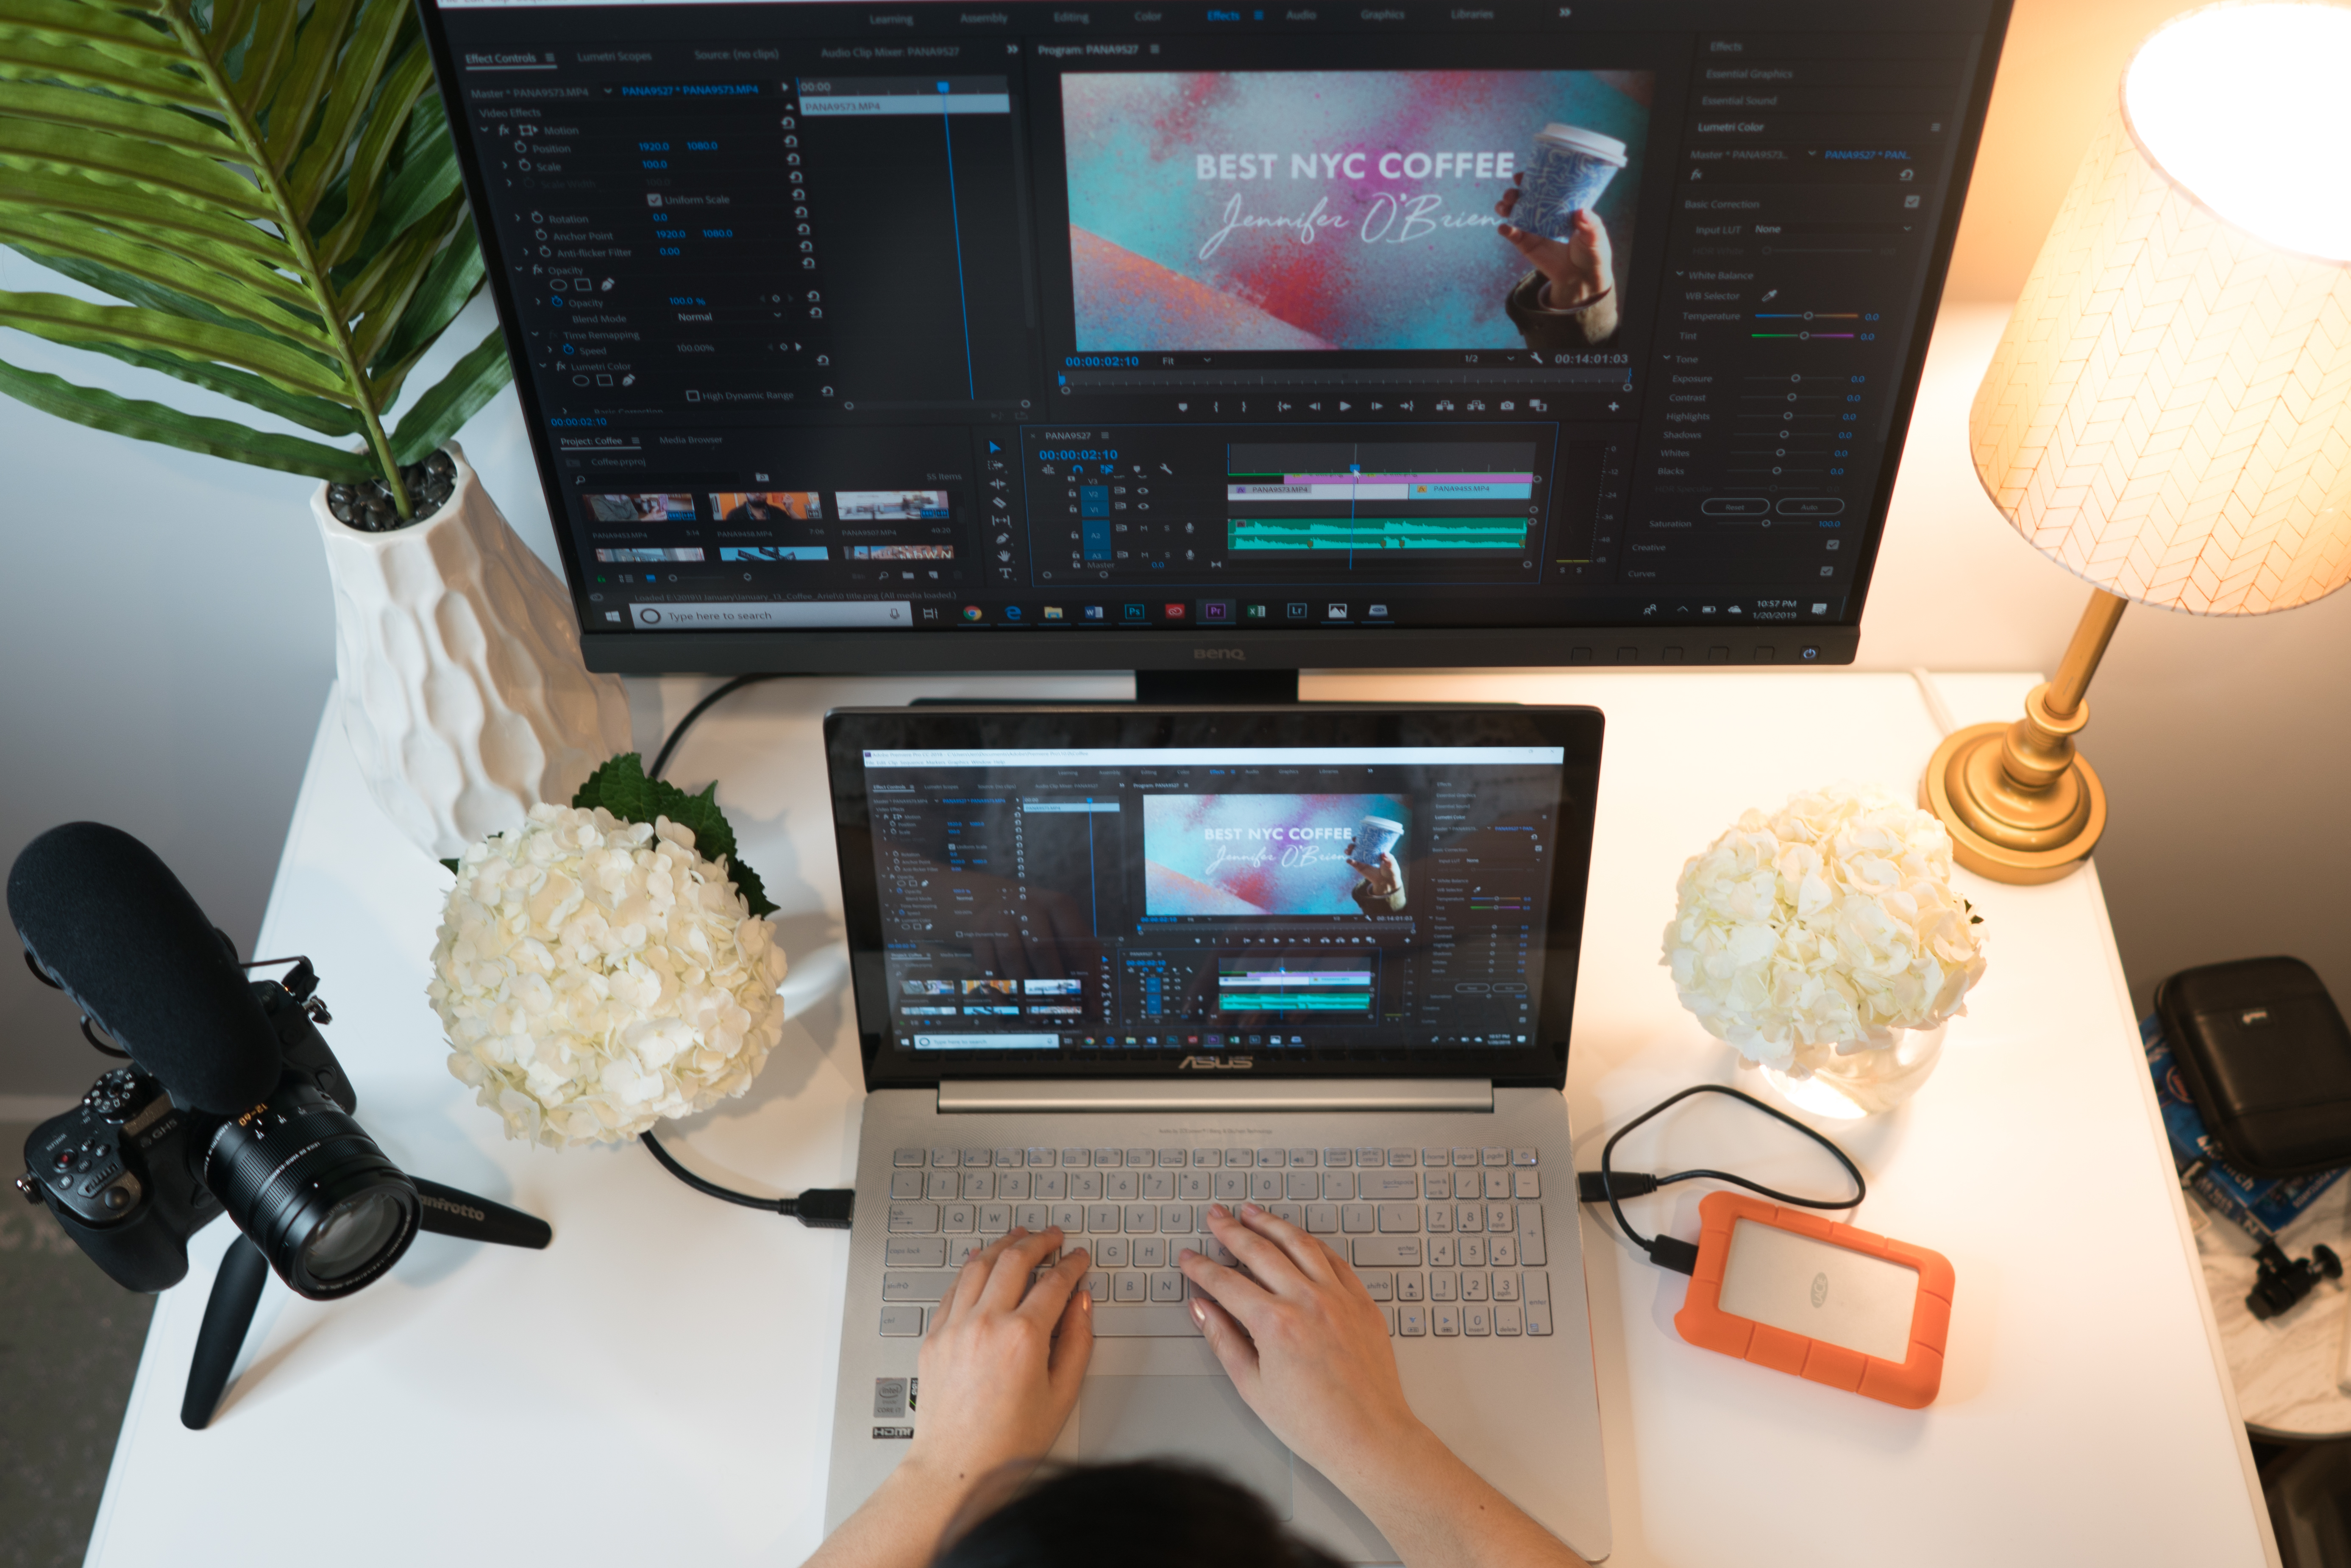 Top video editing mistakes Jennifer O'Brien